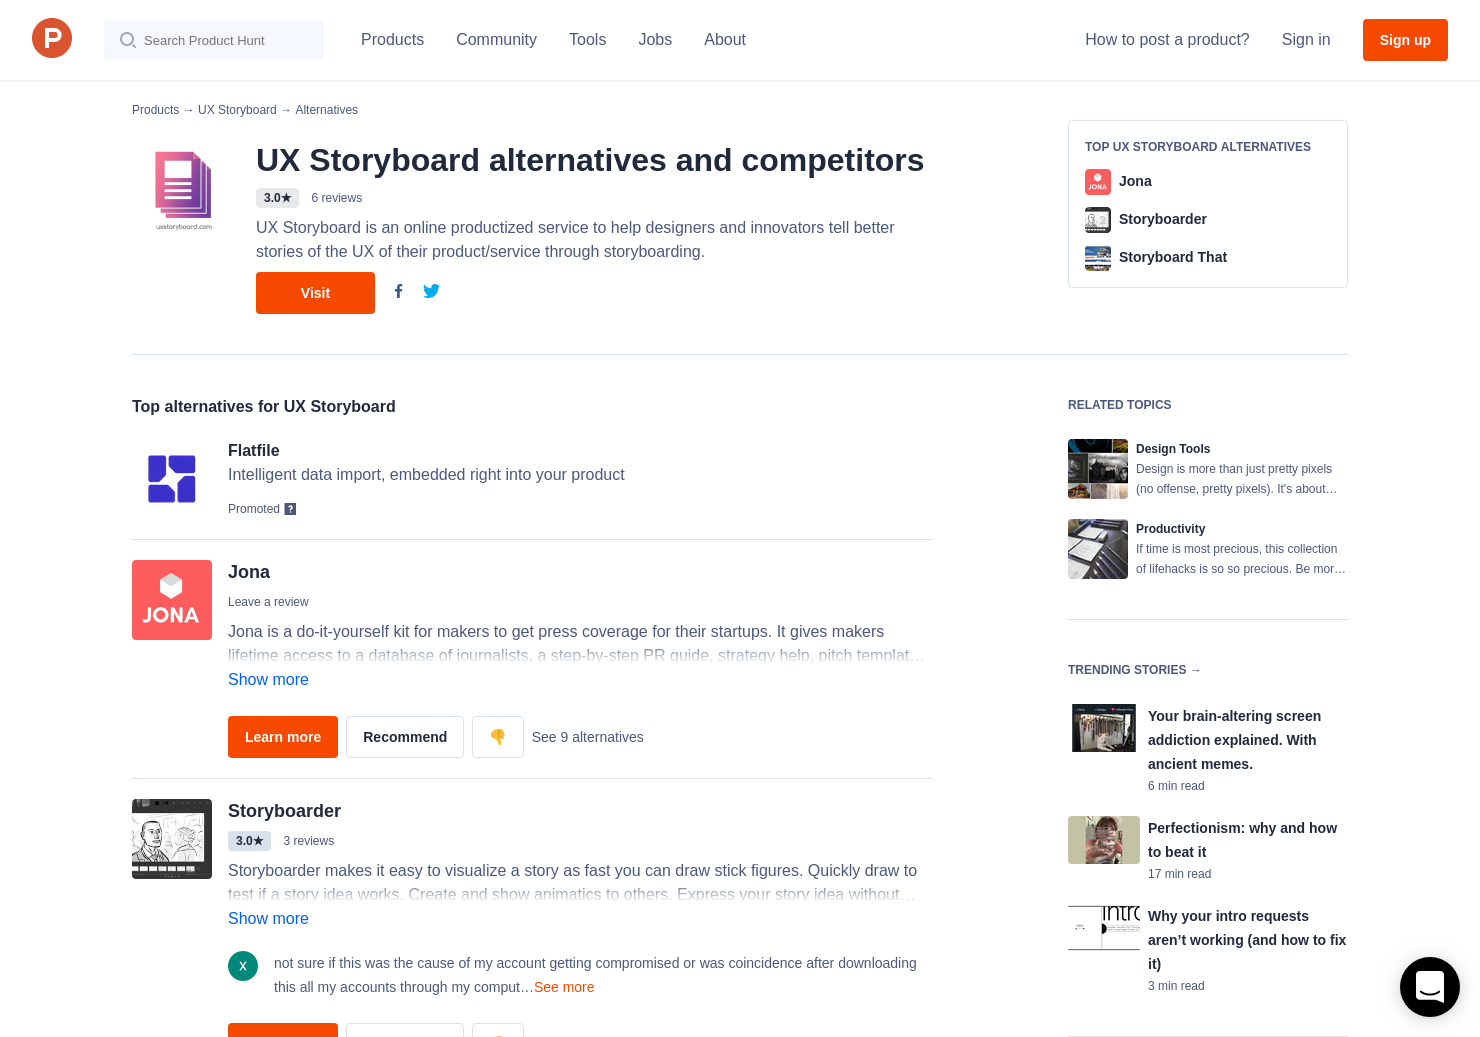 5 Alternatives To Ux Storyboard Product Hunt